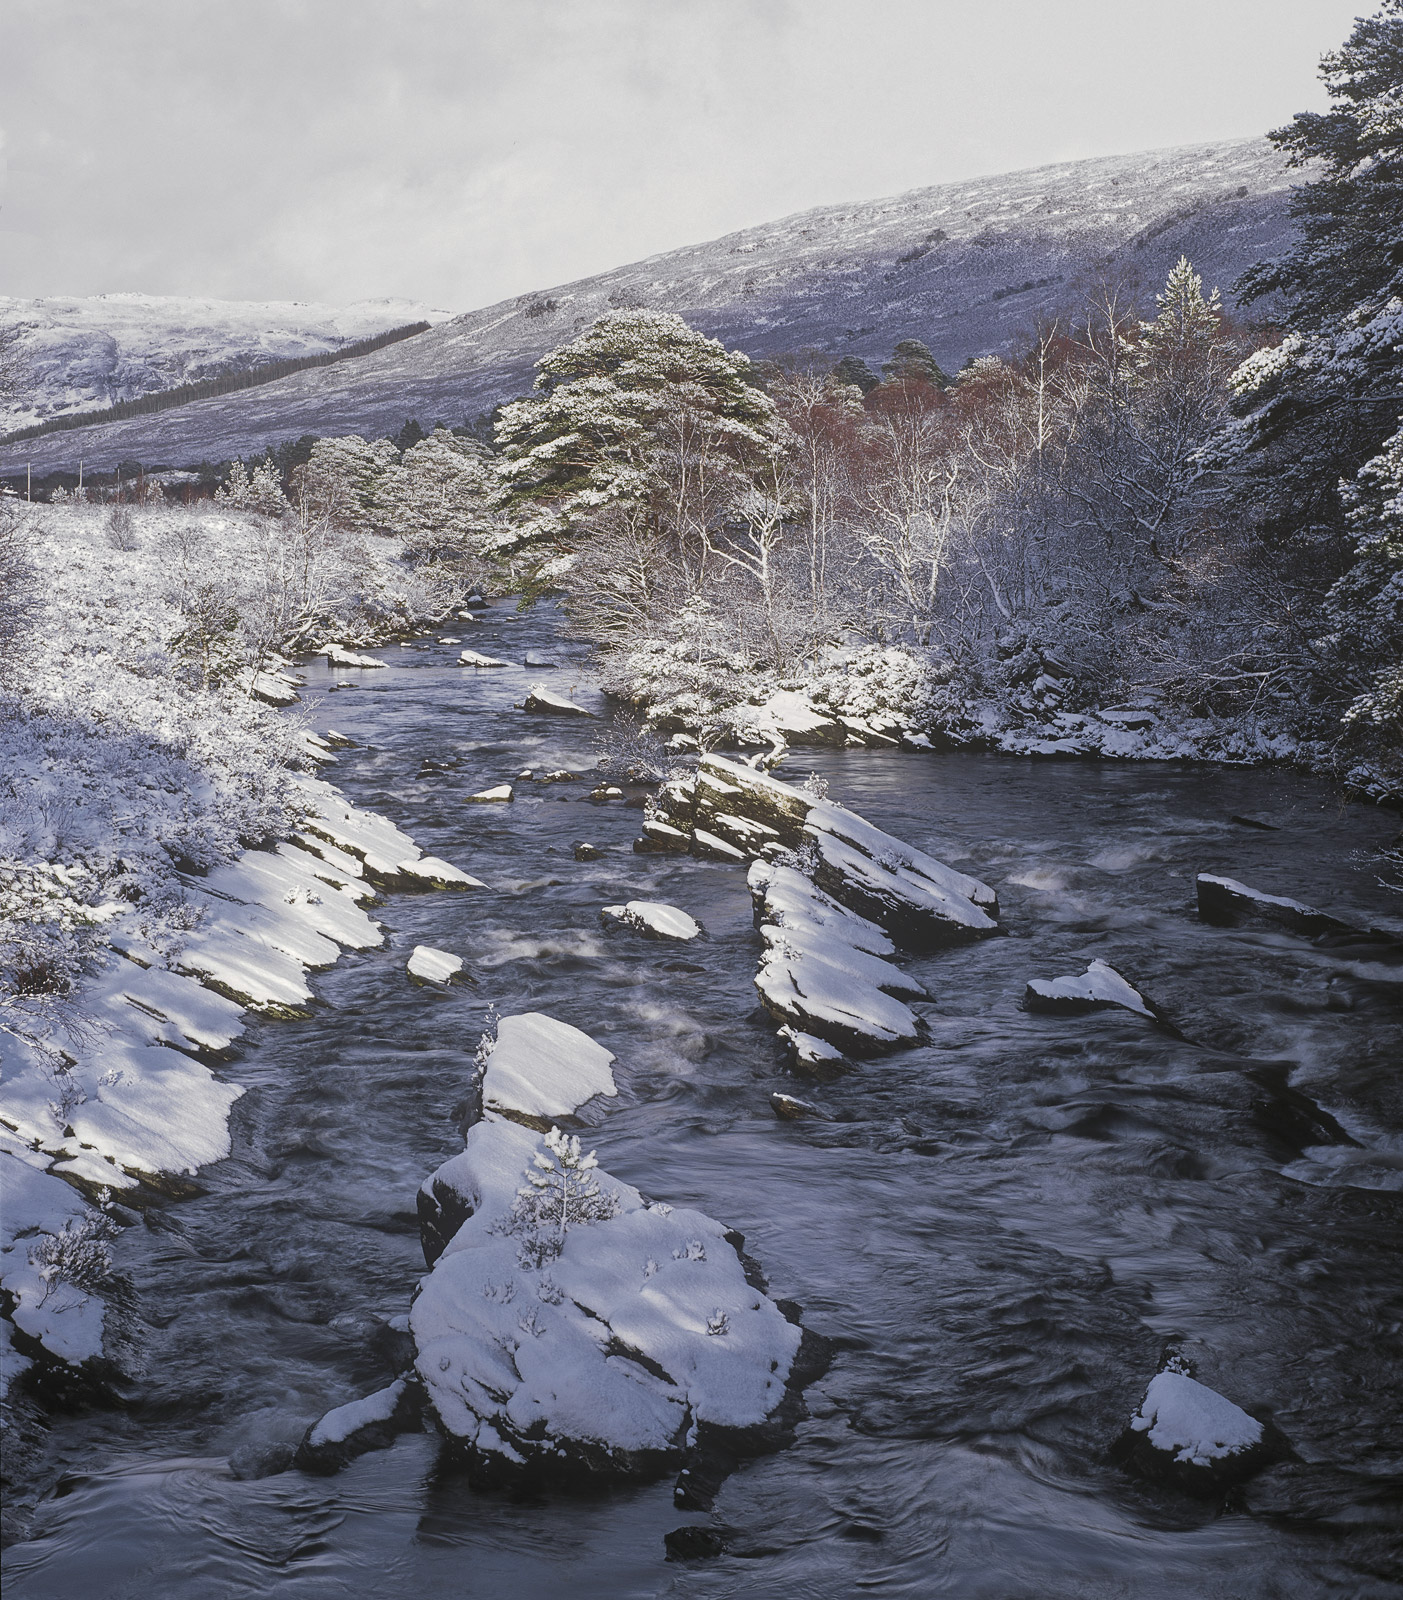 Torridon River, Glen Torridon, Torridon, Scotland, wildest, magnificent, peaks, river, scenic, winter, snow, dusted, sco, photo